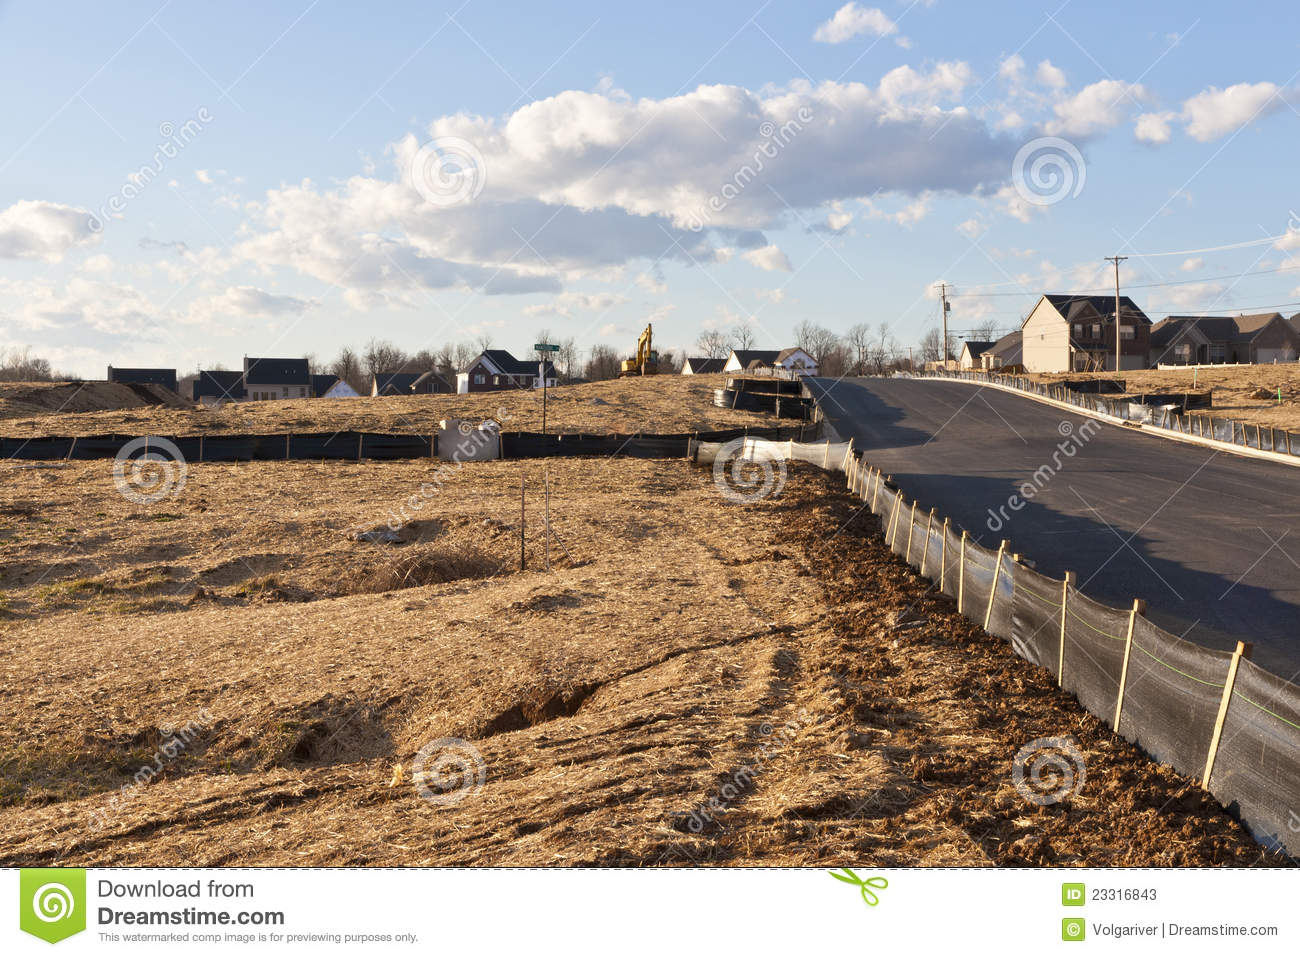 New house construction site stock photos image 23316843 for Home building sites